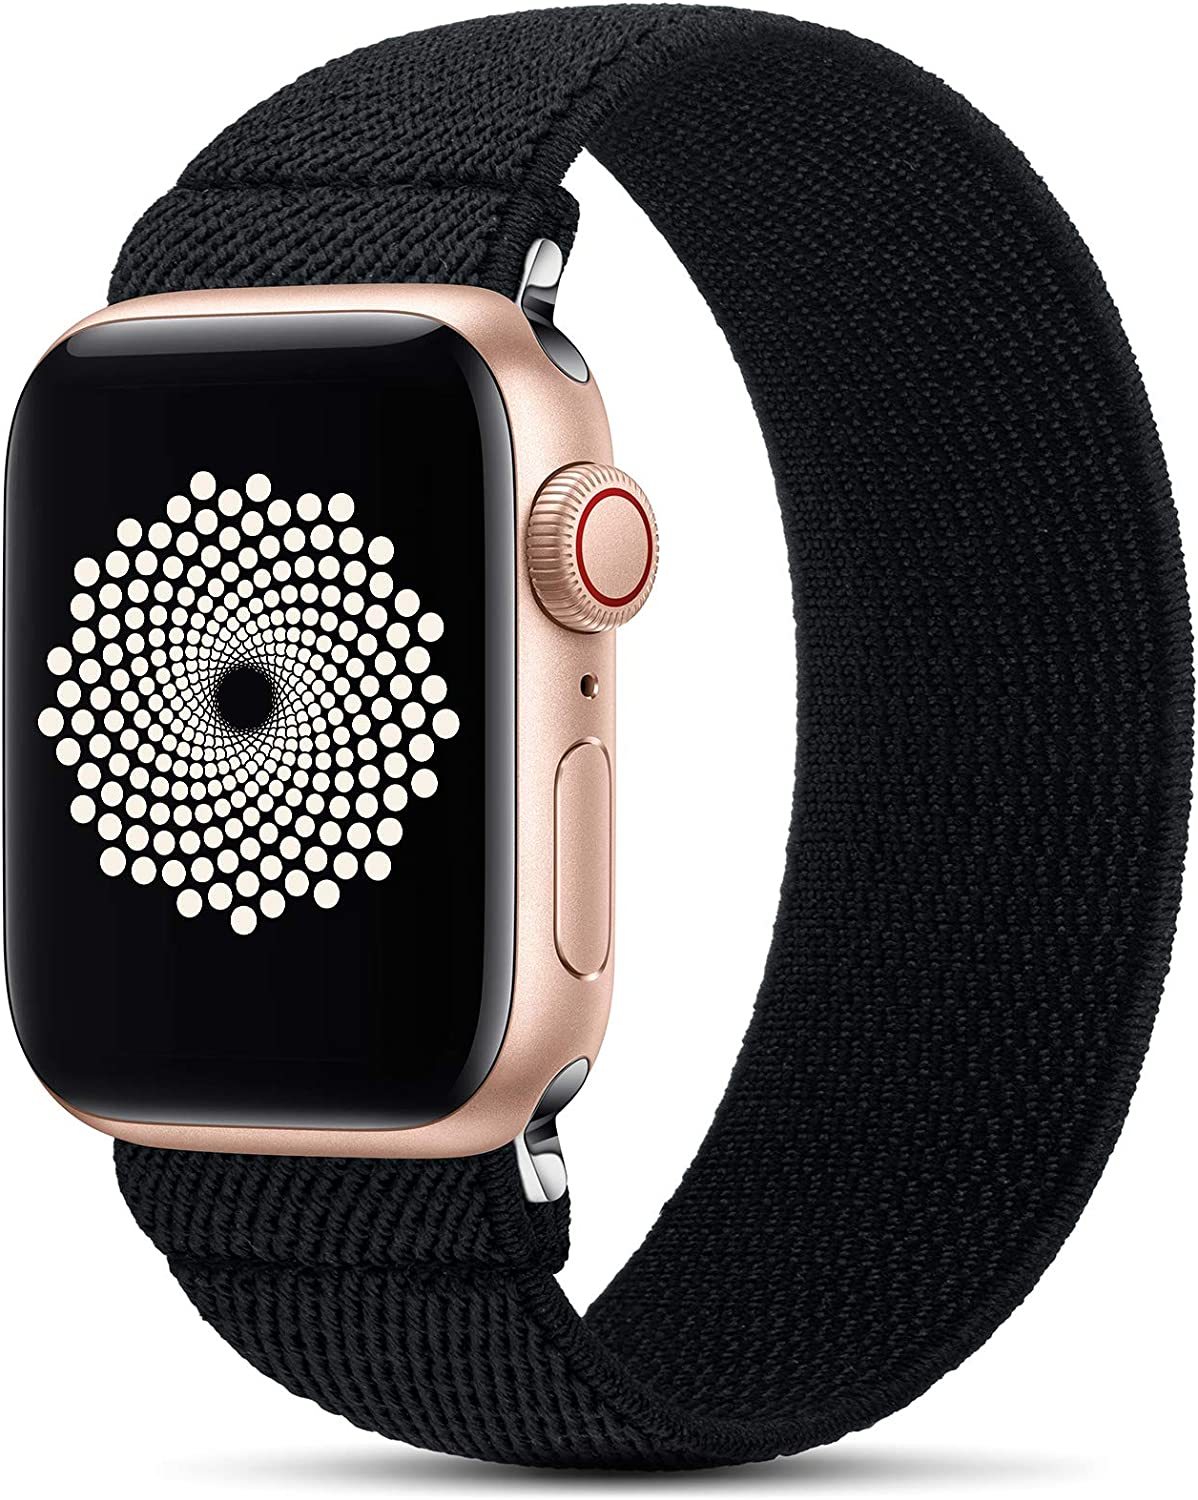 GeekSpark Elastic Band Compatible for Apple Watch Bands 38mm 40mm 42mm 44mm Stretchy Loop Strap Replacement Wristband for iwatch Series 6/SE/5/4/3/2/1 (Black S/M 42mm/44mm)